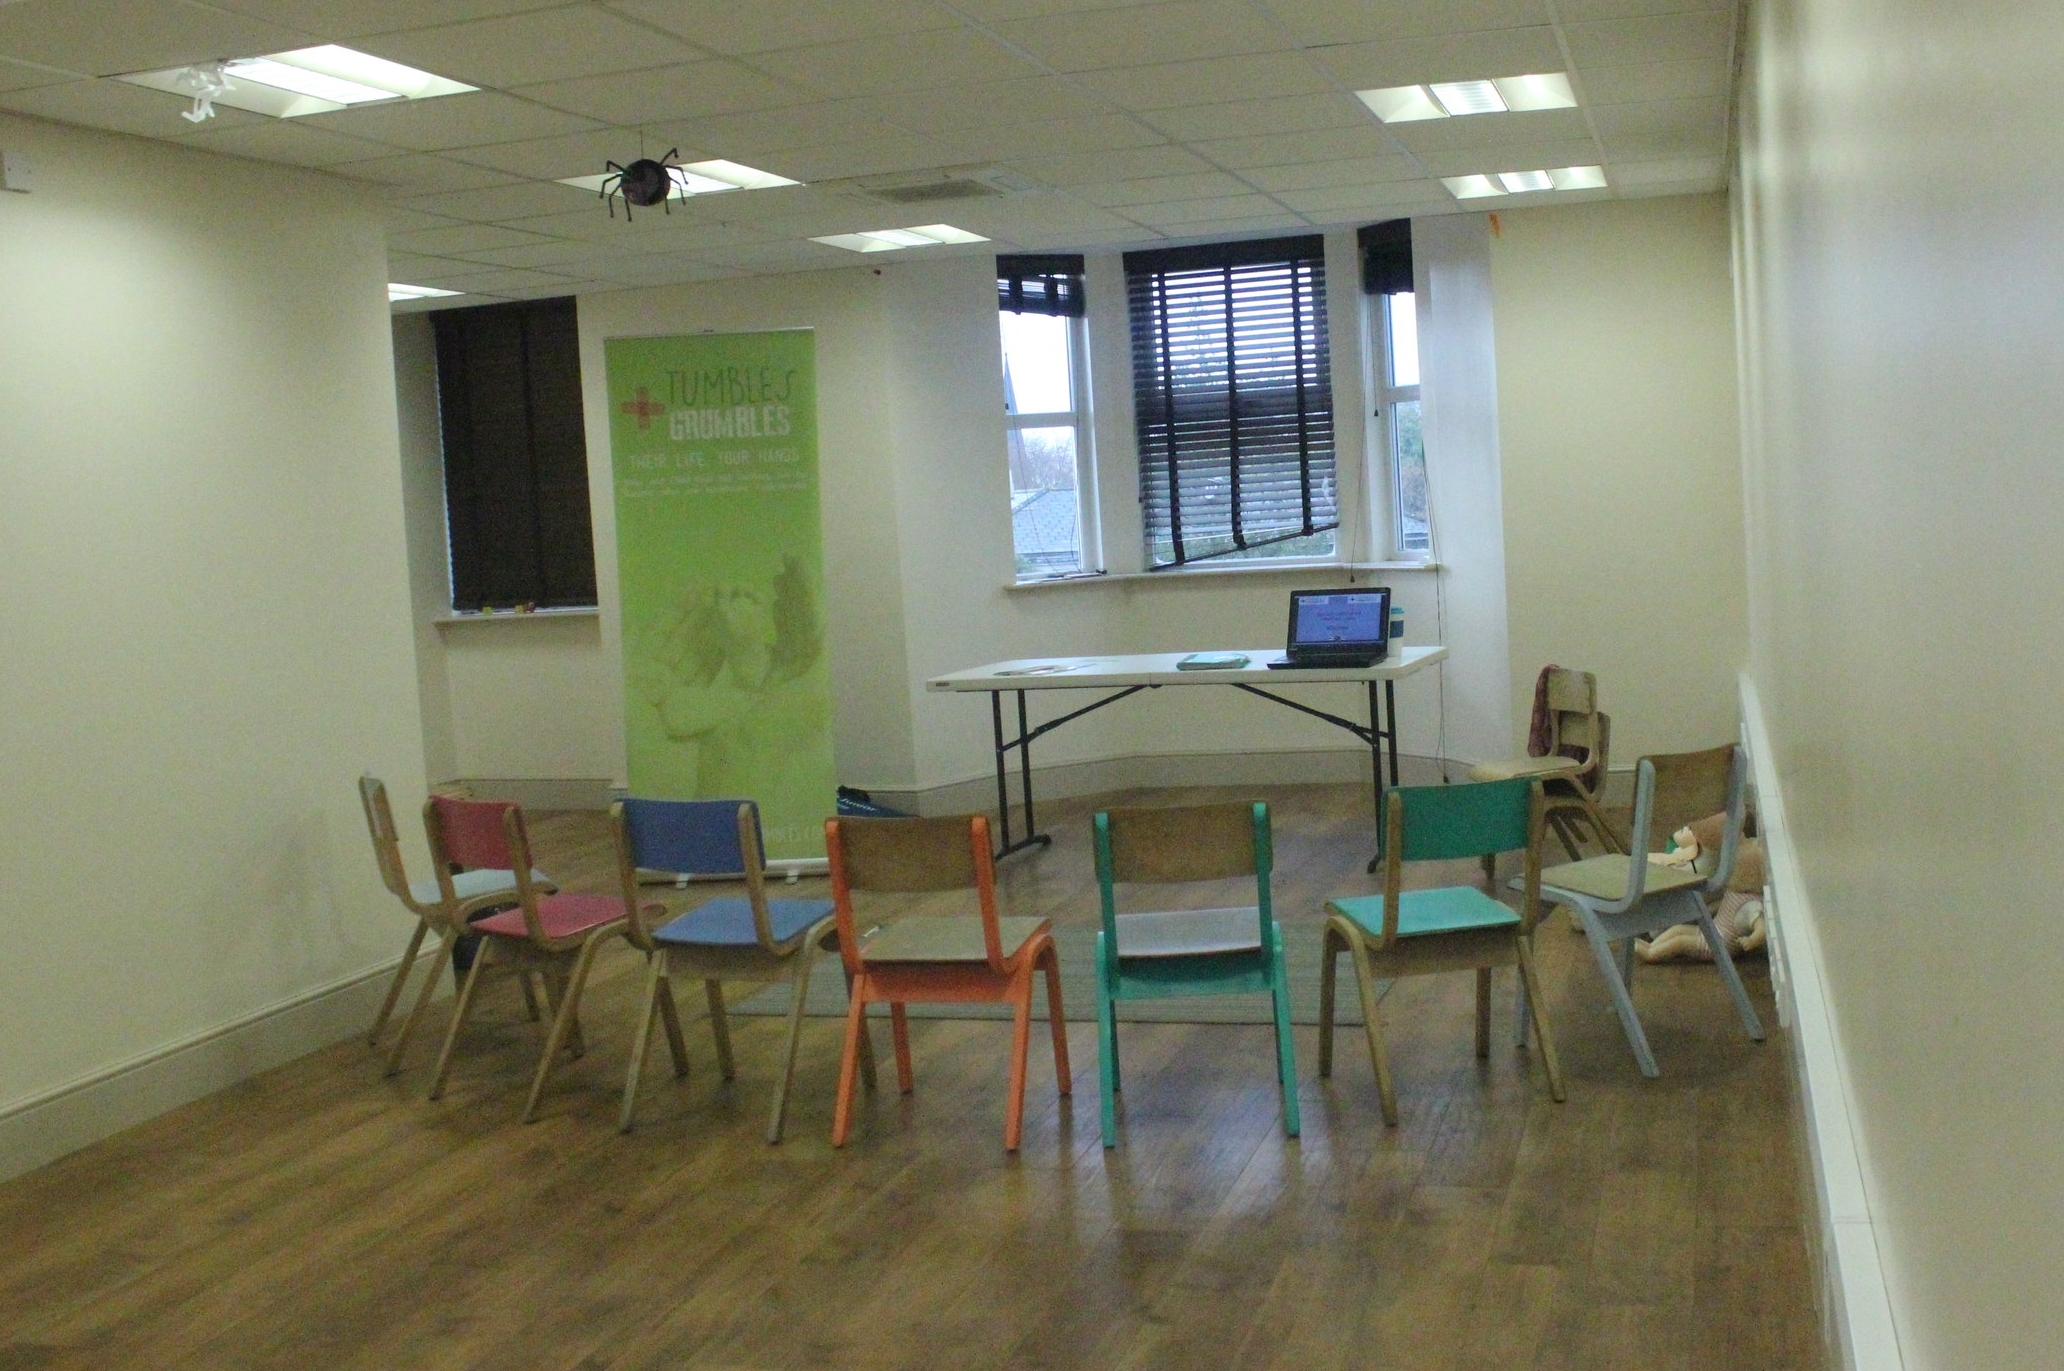 Tumbles-Grumble-paediatric-first-aid-room-set-up-sprog-on-the-tyne-north-east